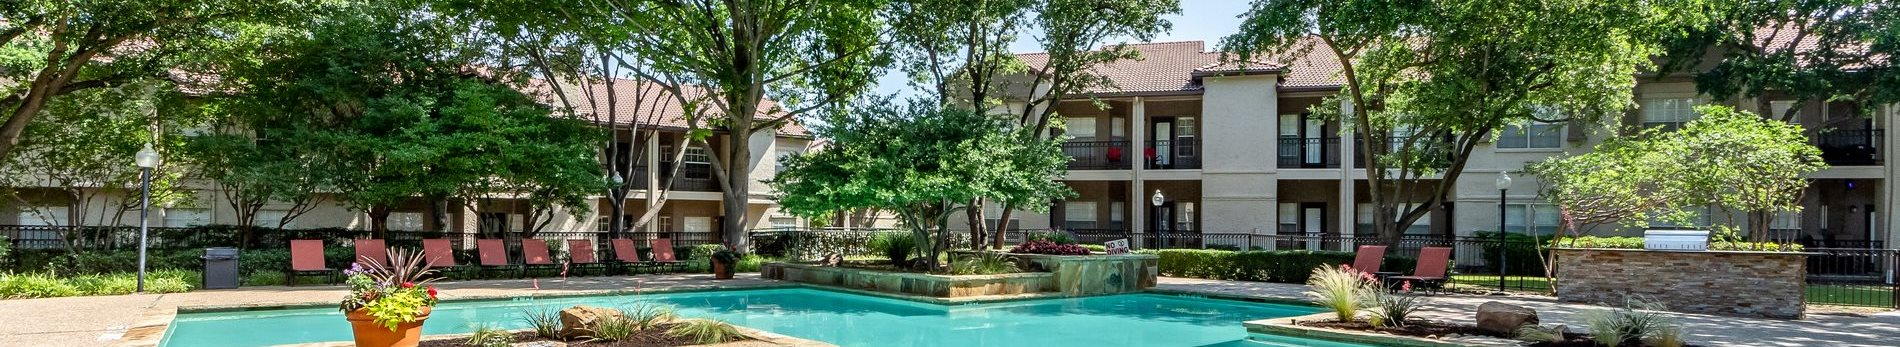 Sundeck at La Costa Apartments in Plano, Texas, TX